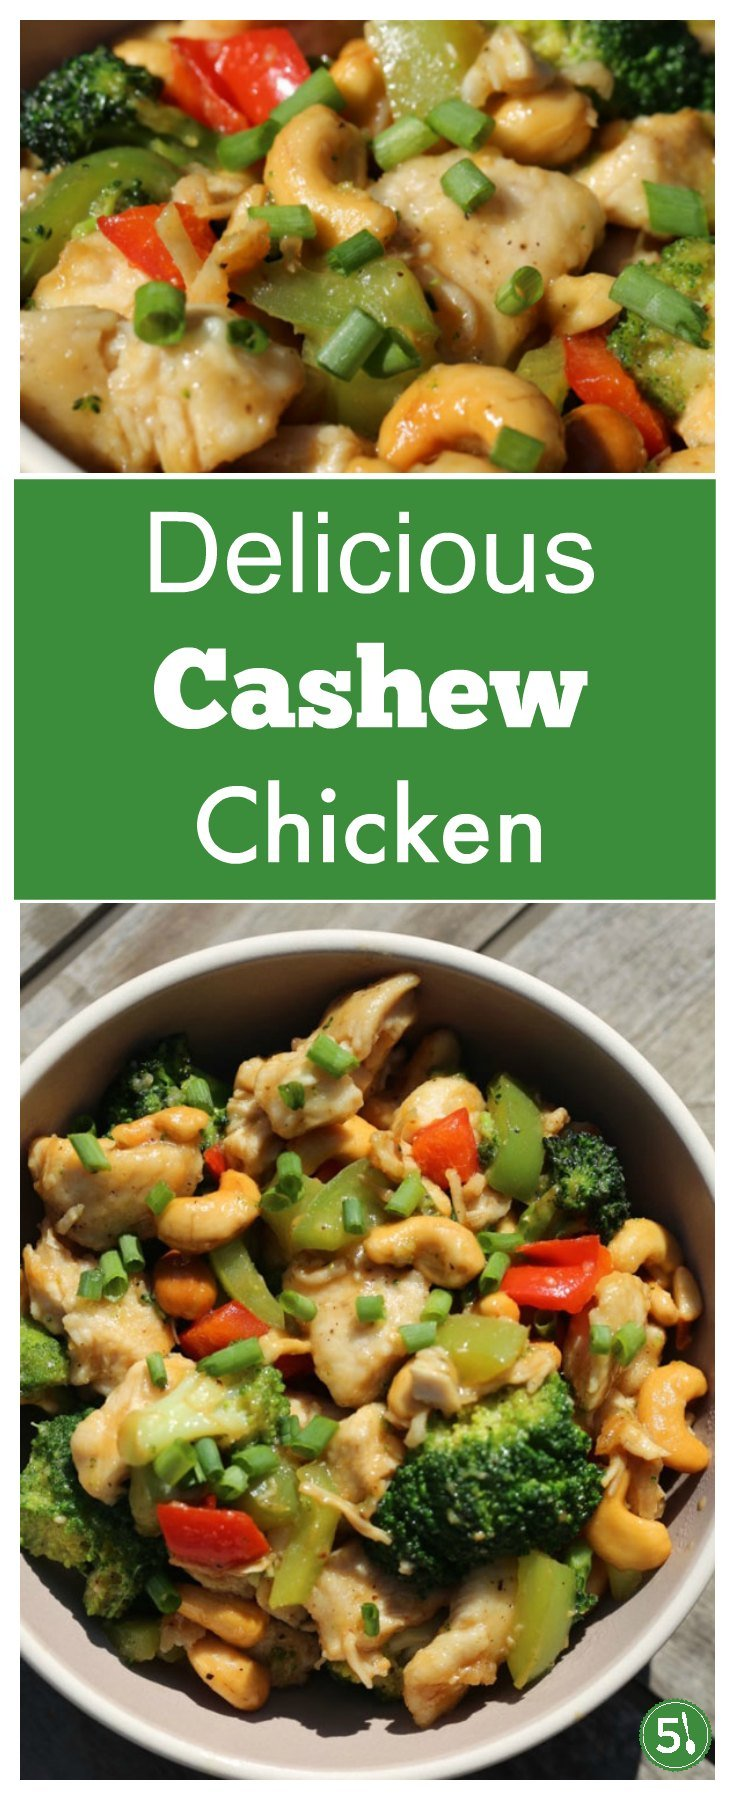 Easy and healthy cashew chicken recipe with red peppers, broccoli, soy sauce and garlic. Families who love quick and tasty meals will love this dish.